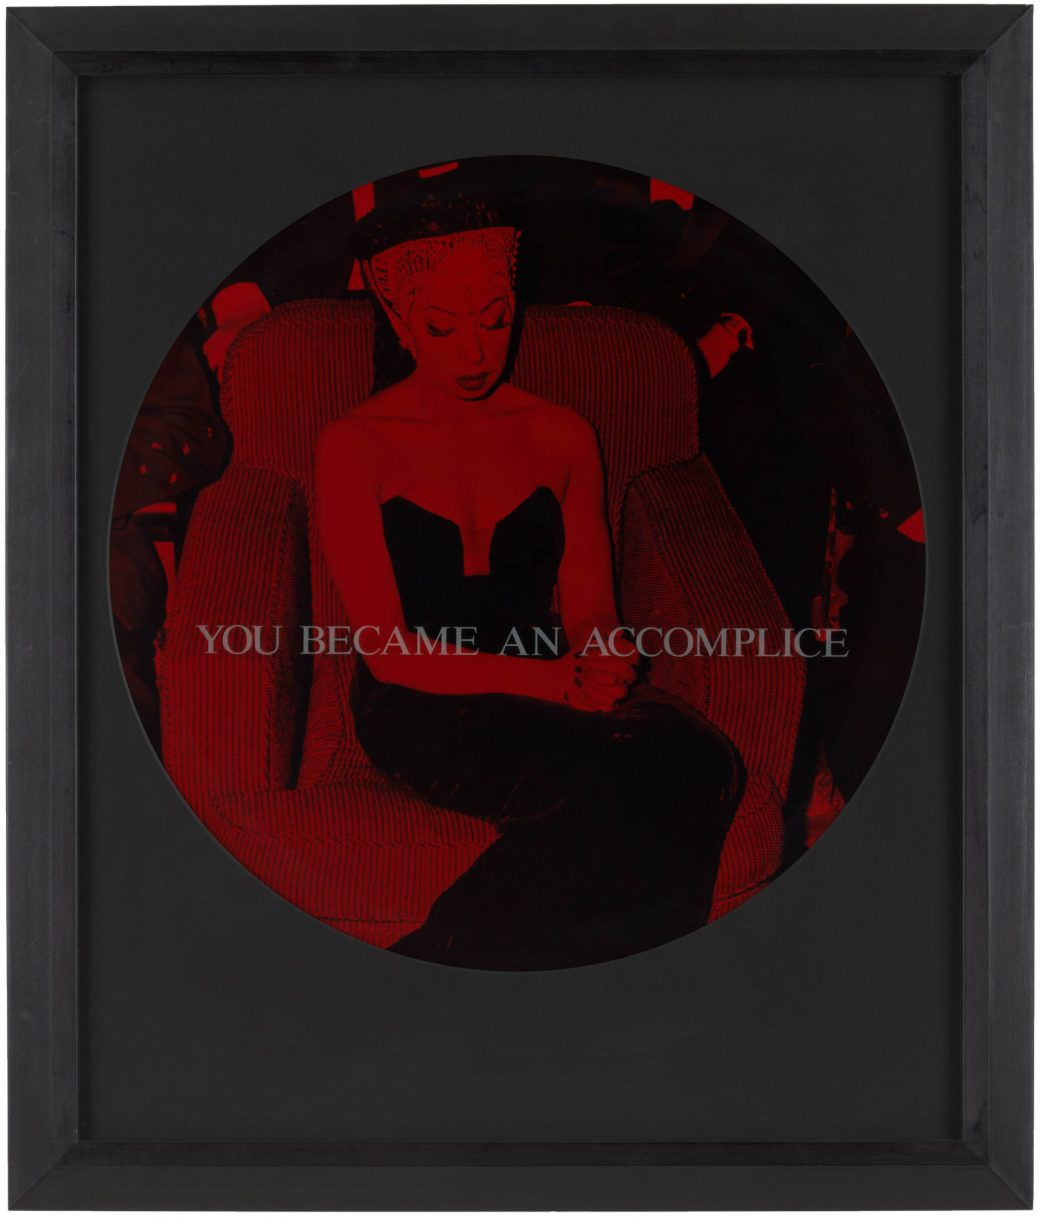 Carrie Mae Weems, You Became an Accomplice, 1995–96